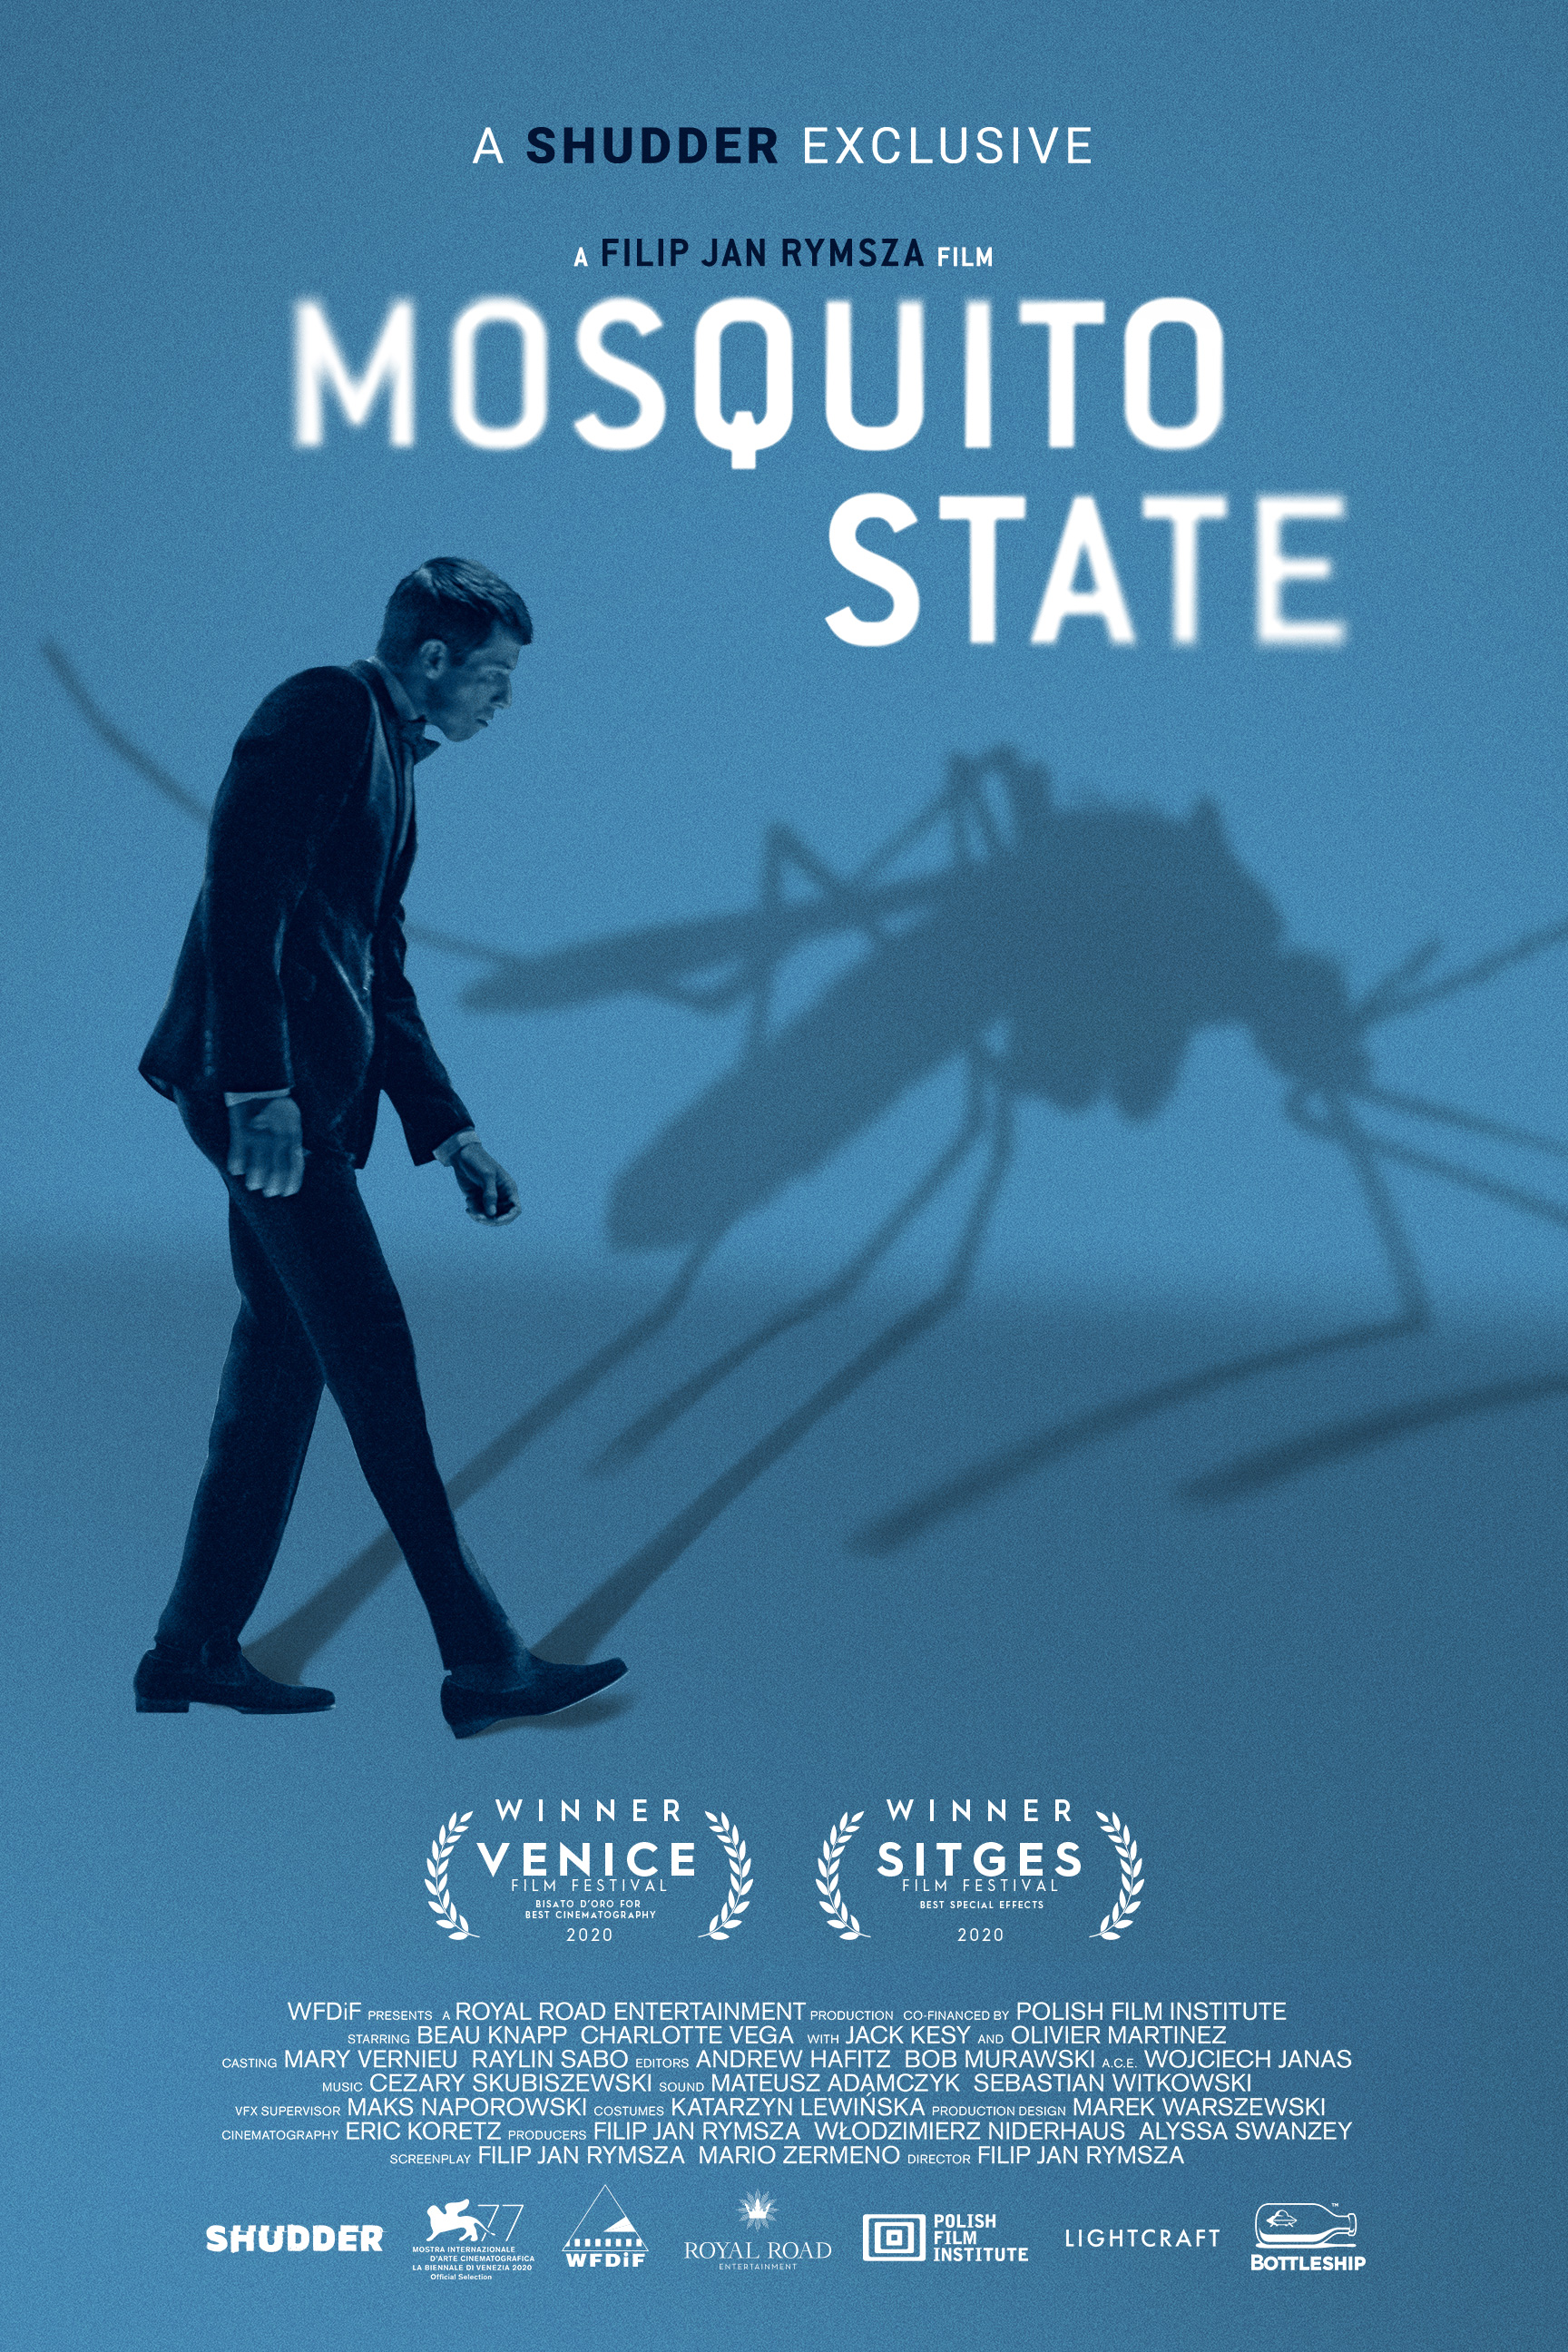 Download Mosquito State (2020) Bengali Dubbed (Voice Over) WEBRip 720p [Full Movie] 1XBET FREE on 1XCinema.com & KatMovieHD.sk